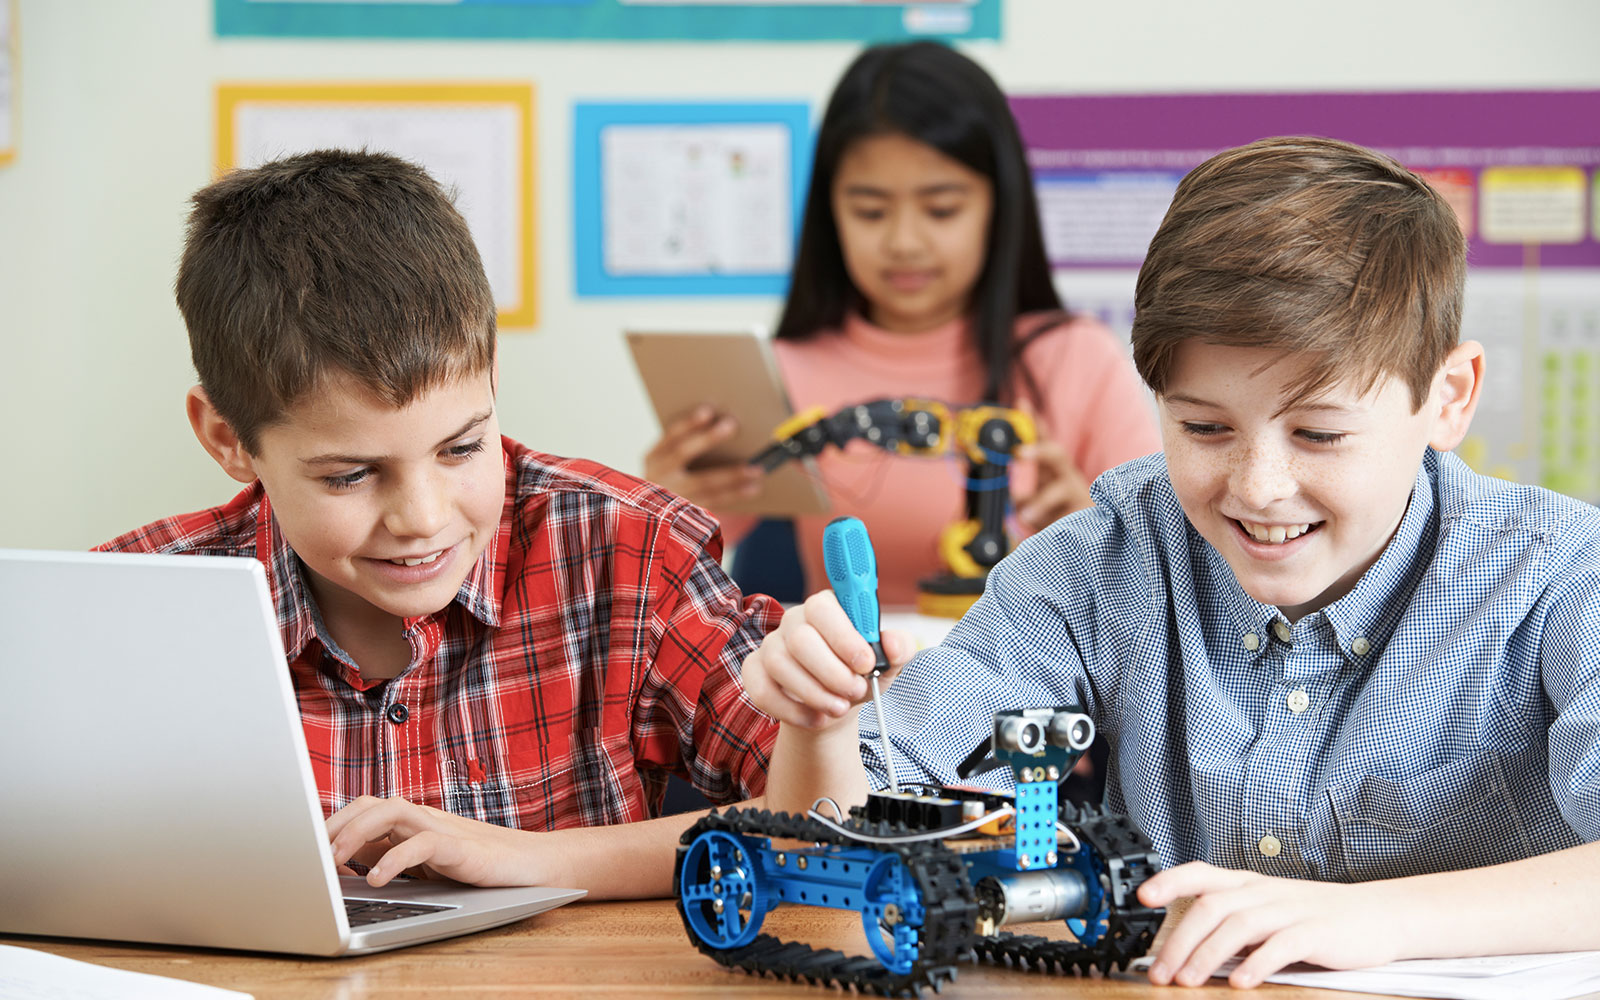 Funds Fuel STEAM Lab Robotics Learning